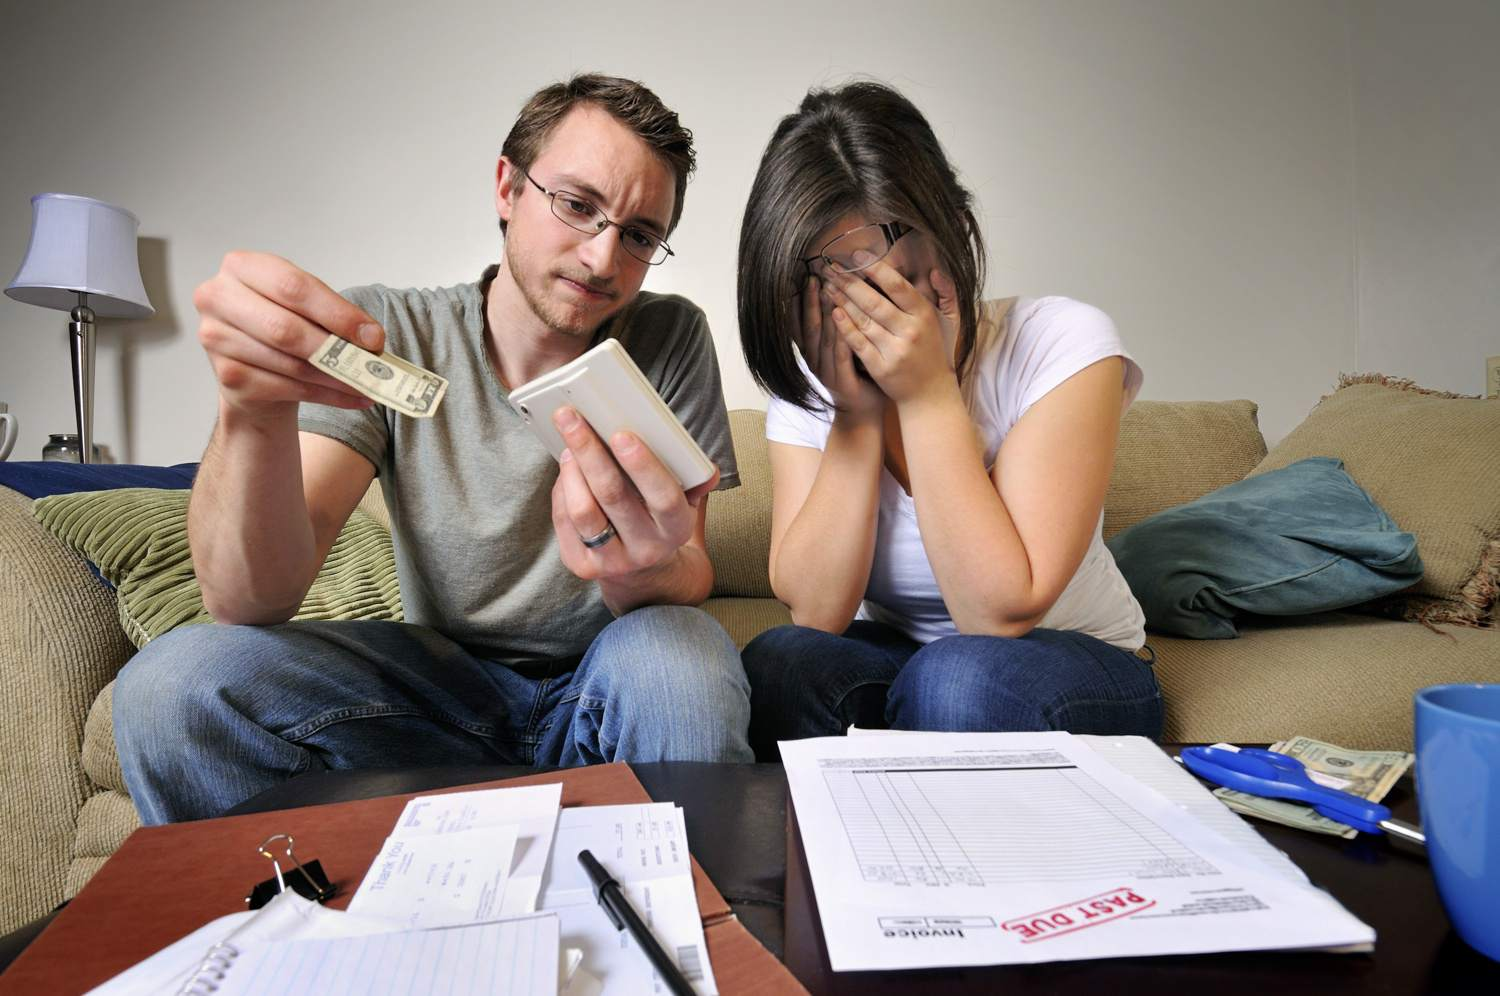 Couple looking distressed over money